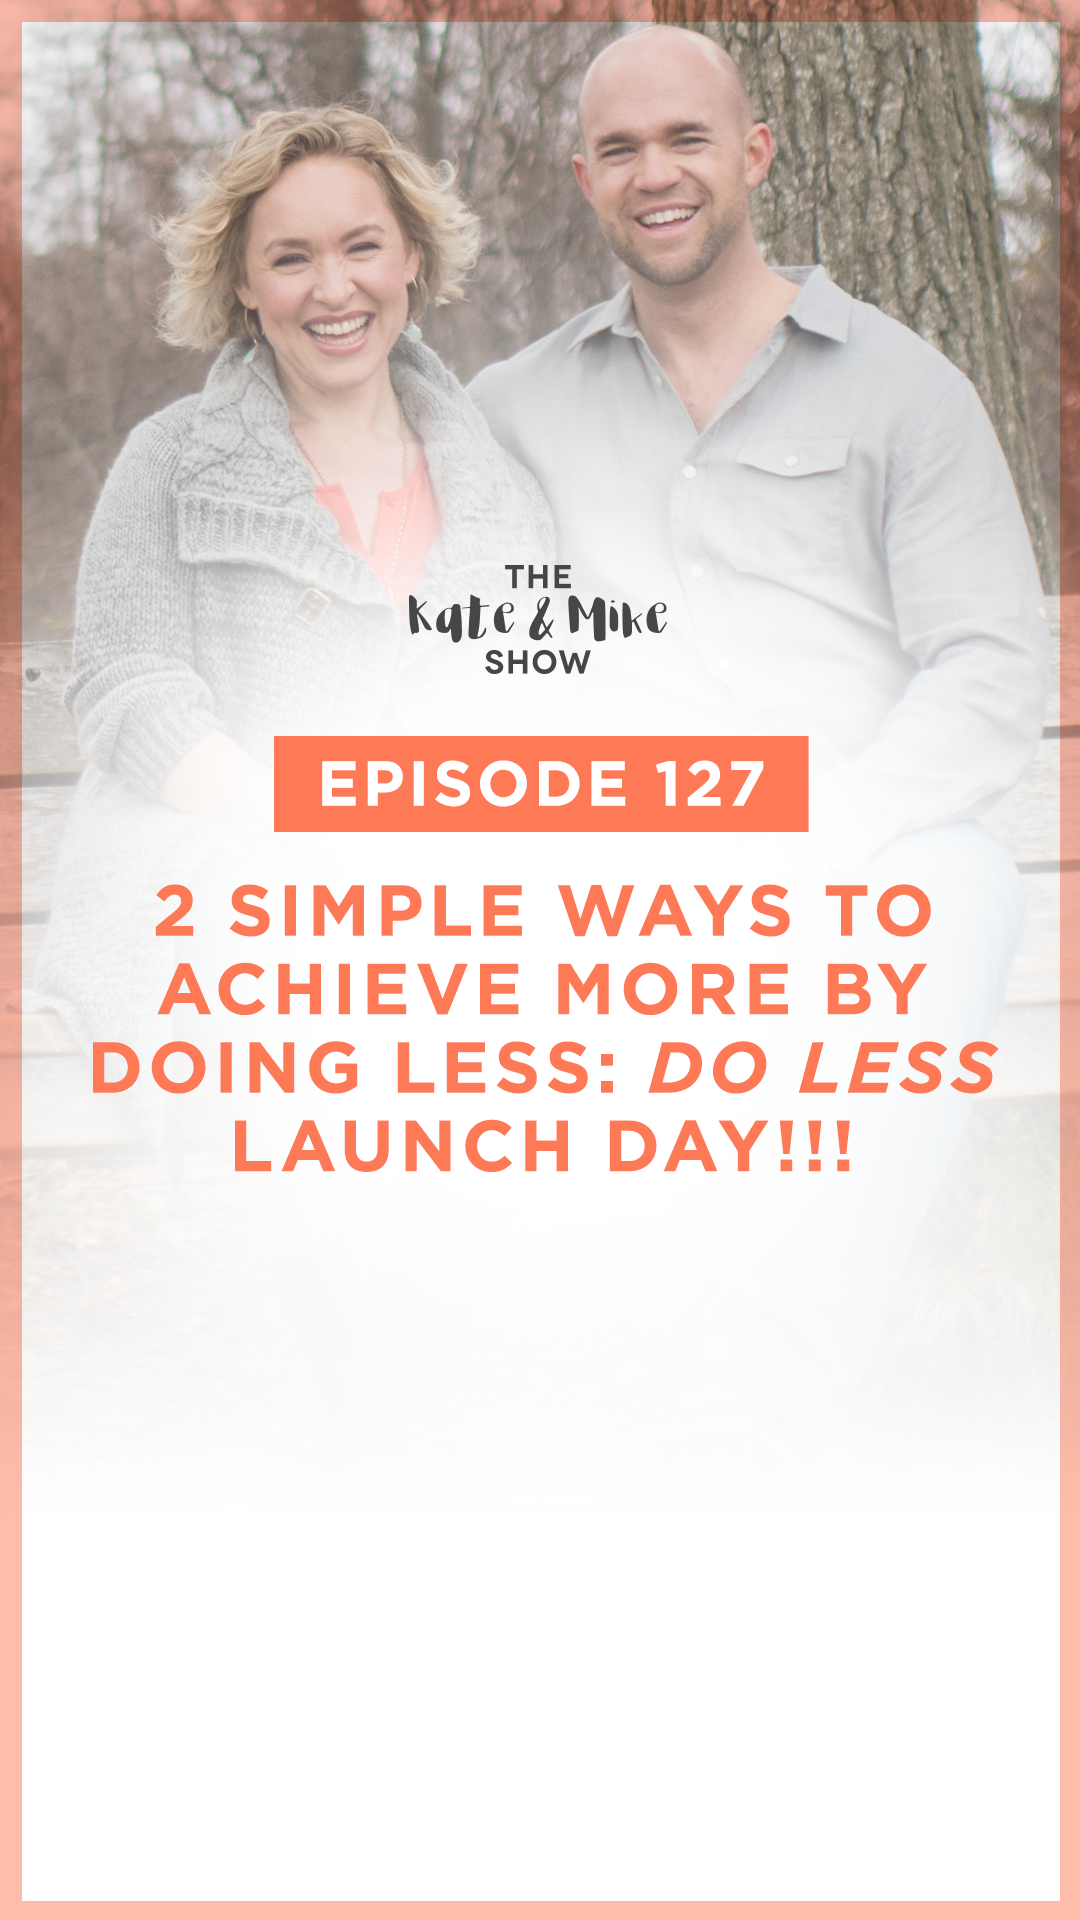 Episode 127 2 Simple Ways To Achieve More By Doing Less